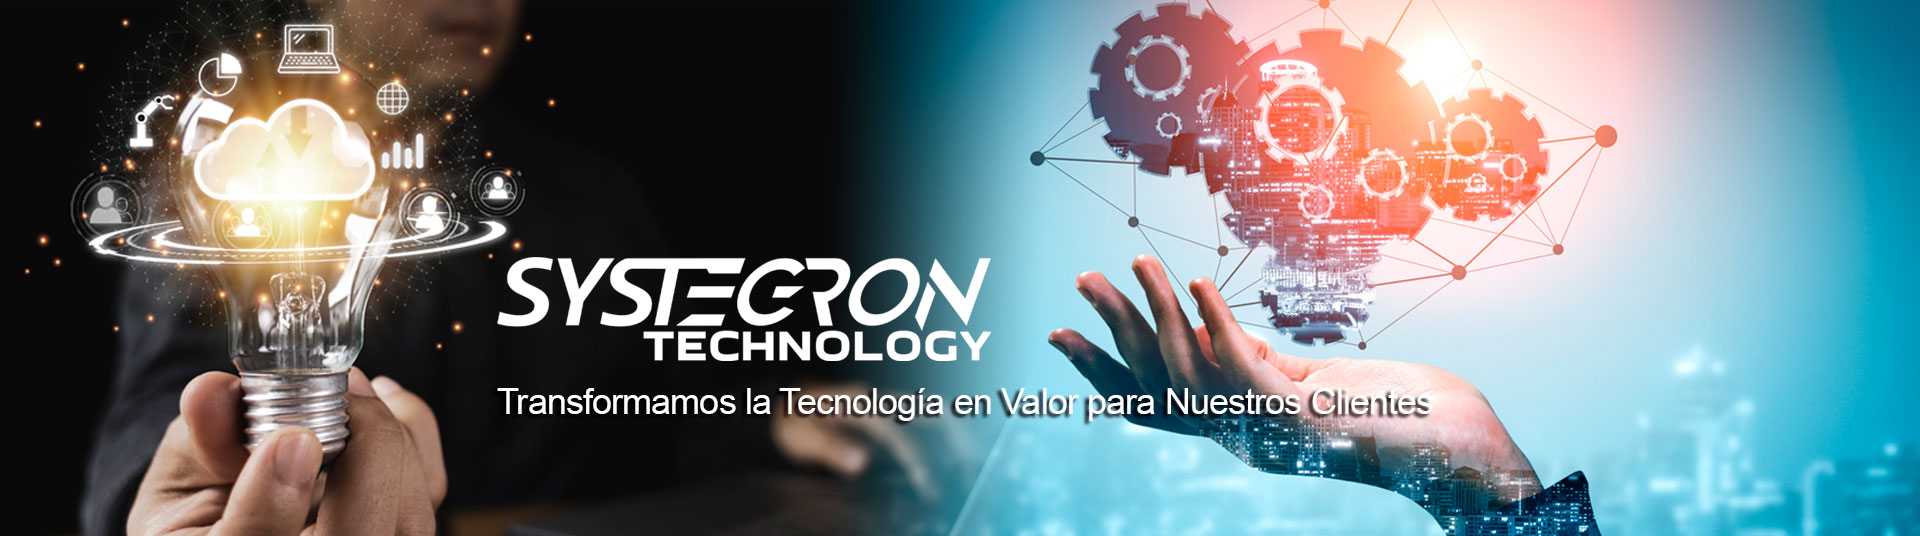 systegron